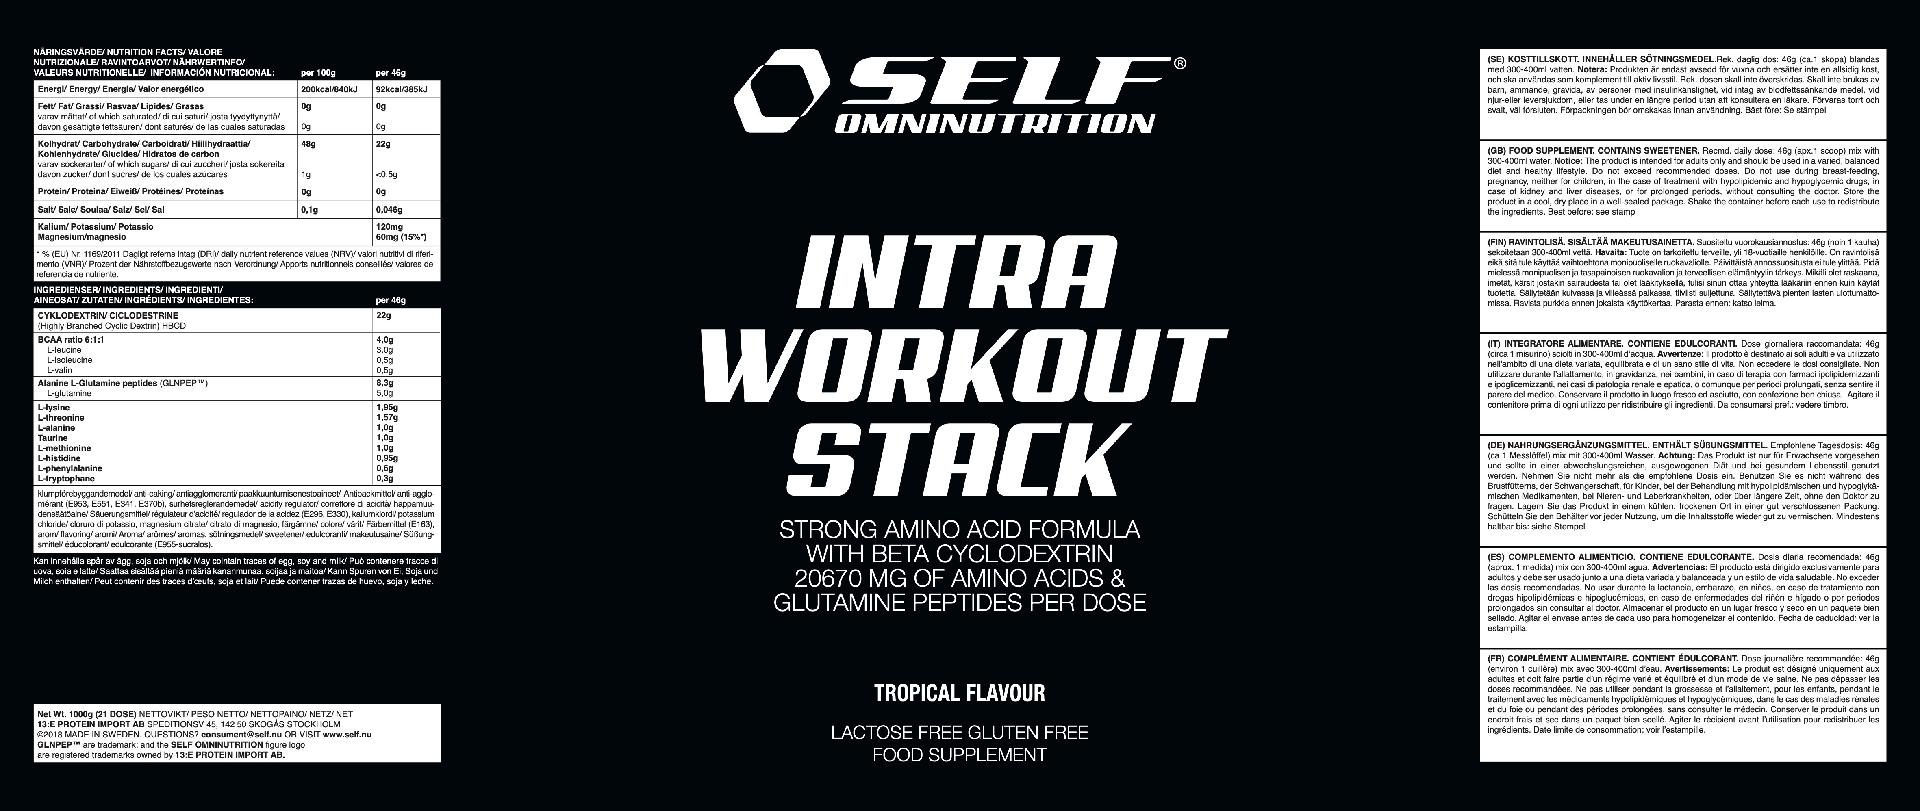 INTRA WORKOUT PREMIUM TROPICAL FLAVOUR SELF 1 KG